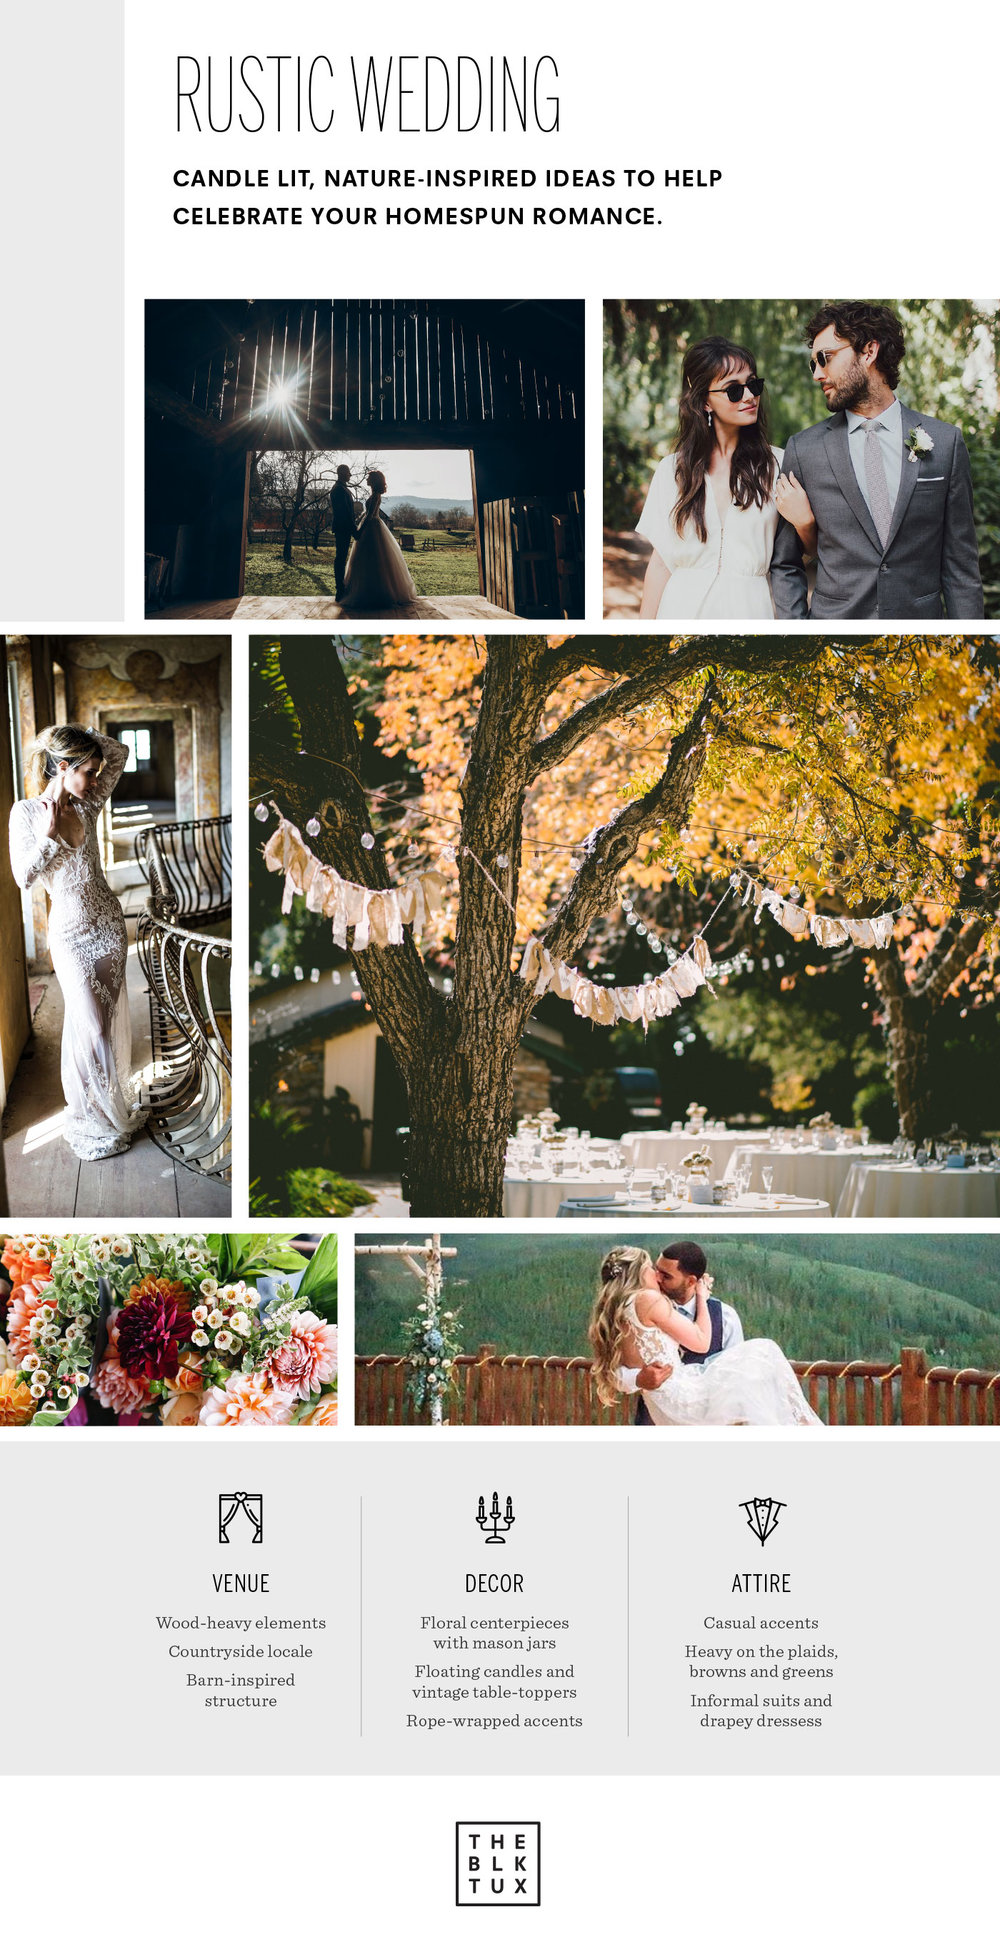 blktux_wedding_theme_trends_fall17_rustic_v06@2x.jpg